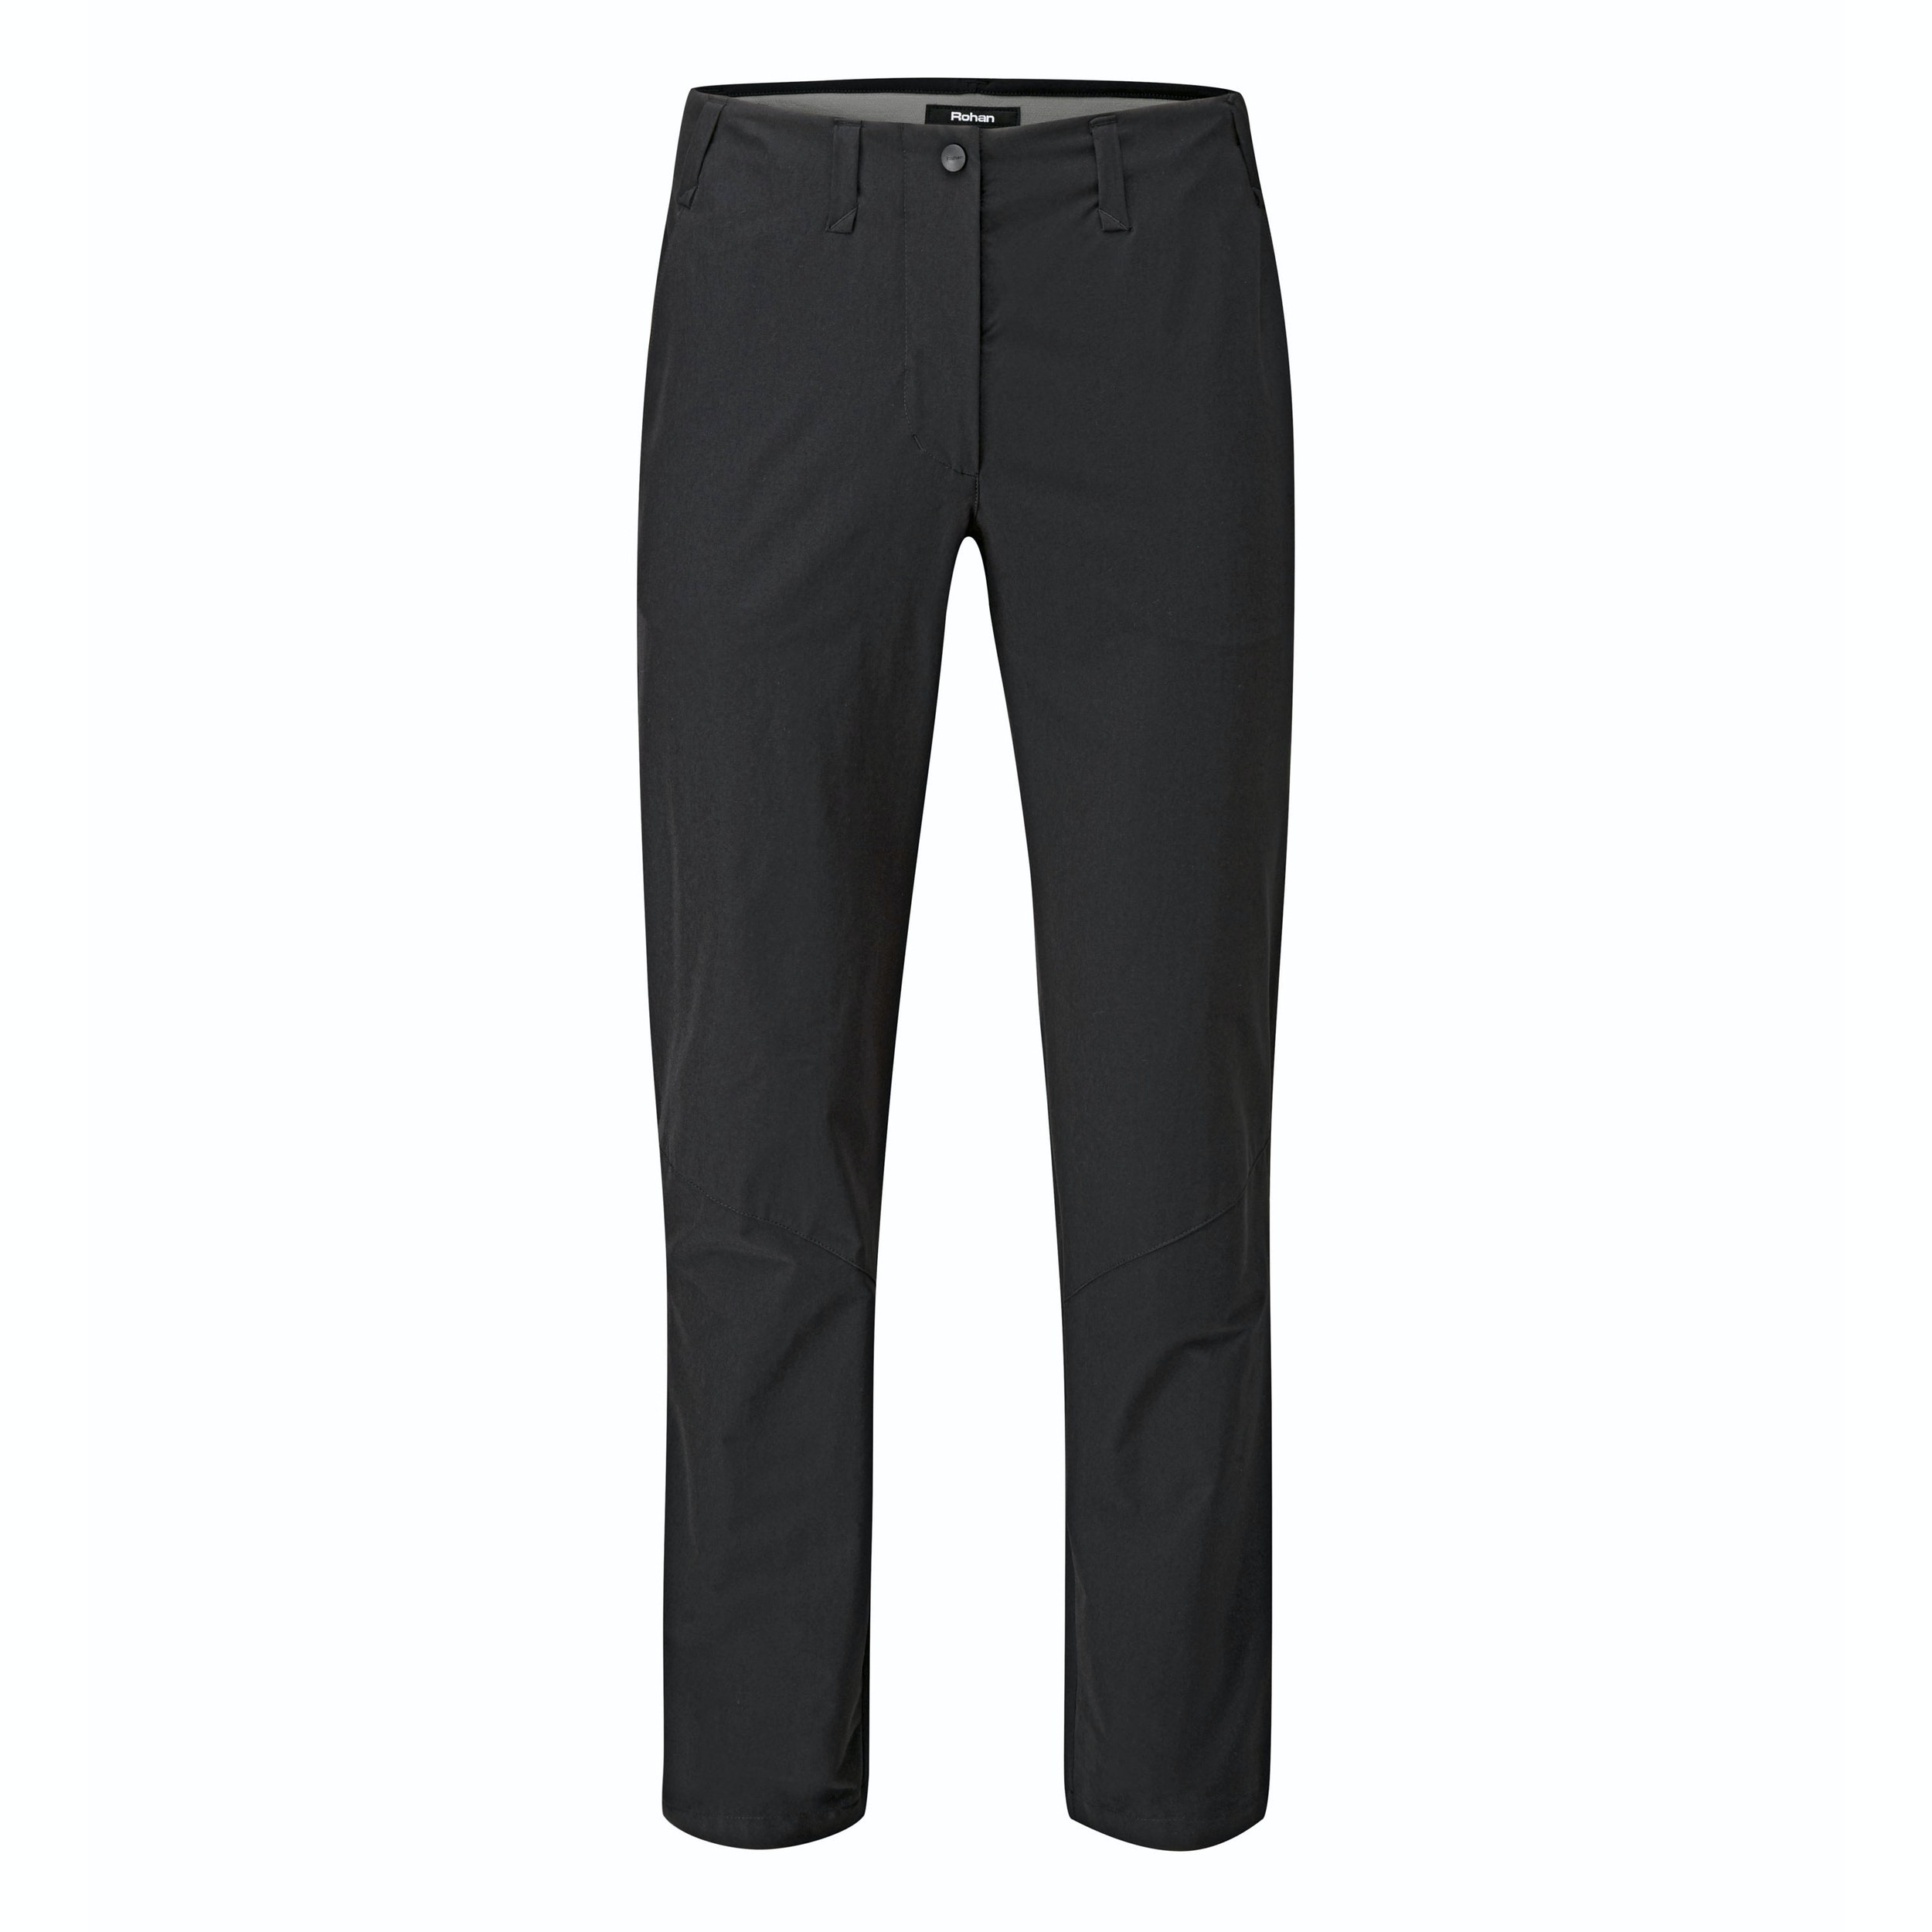 3fdf608f7 Women's Roamers - Our best selling versatile women's walking trousers.